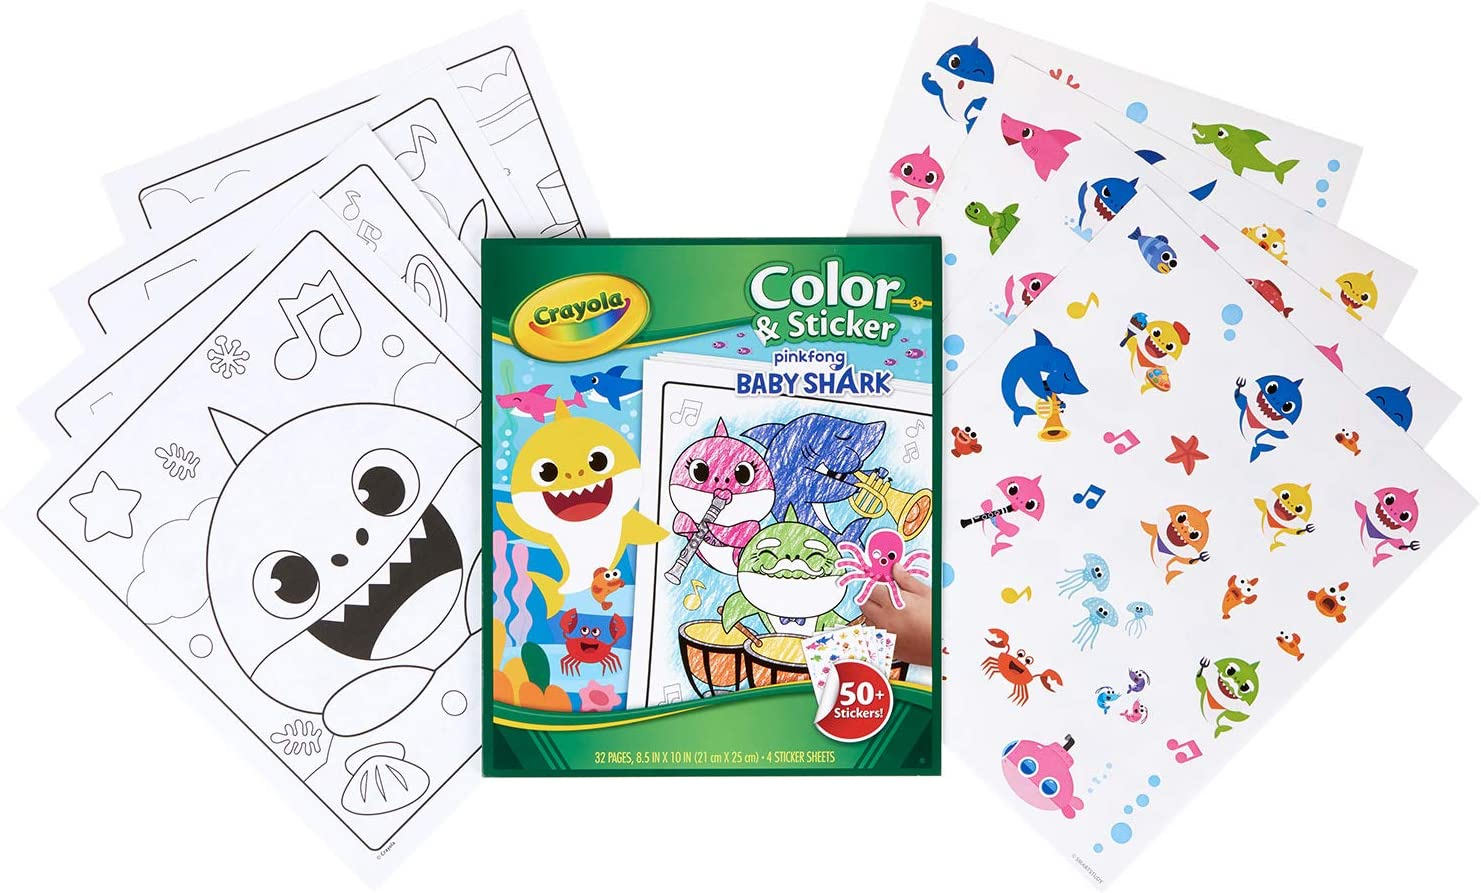 Amazon.com: Crayola Baby Shark Coloring Pages & Stickers, Gift for Kids,  Ages 3, 4, 5, 6: Toys & Games